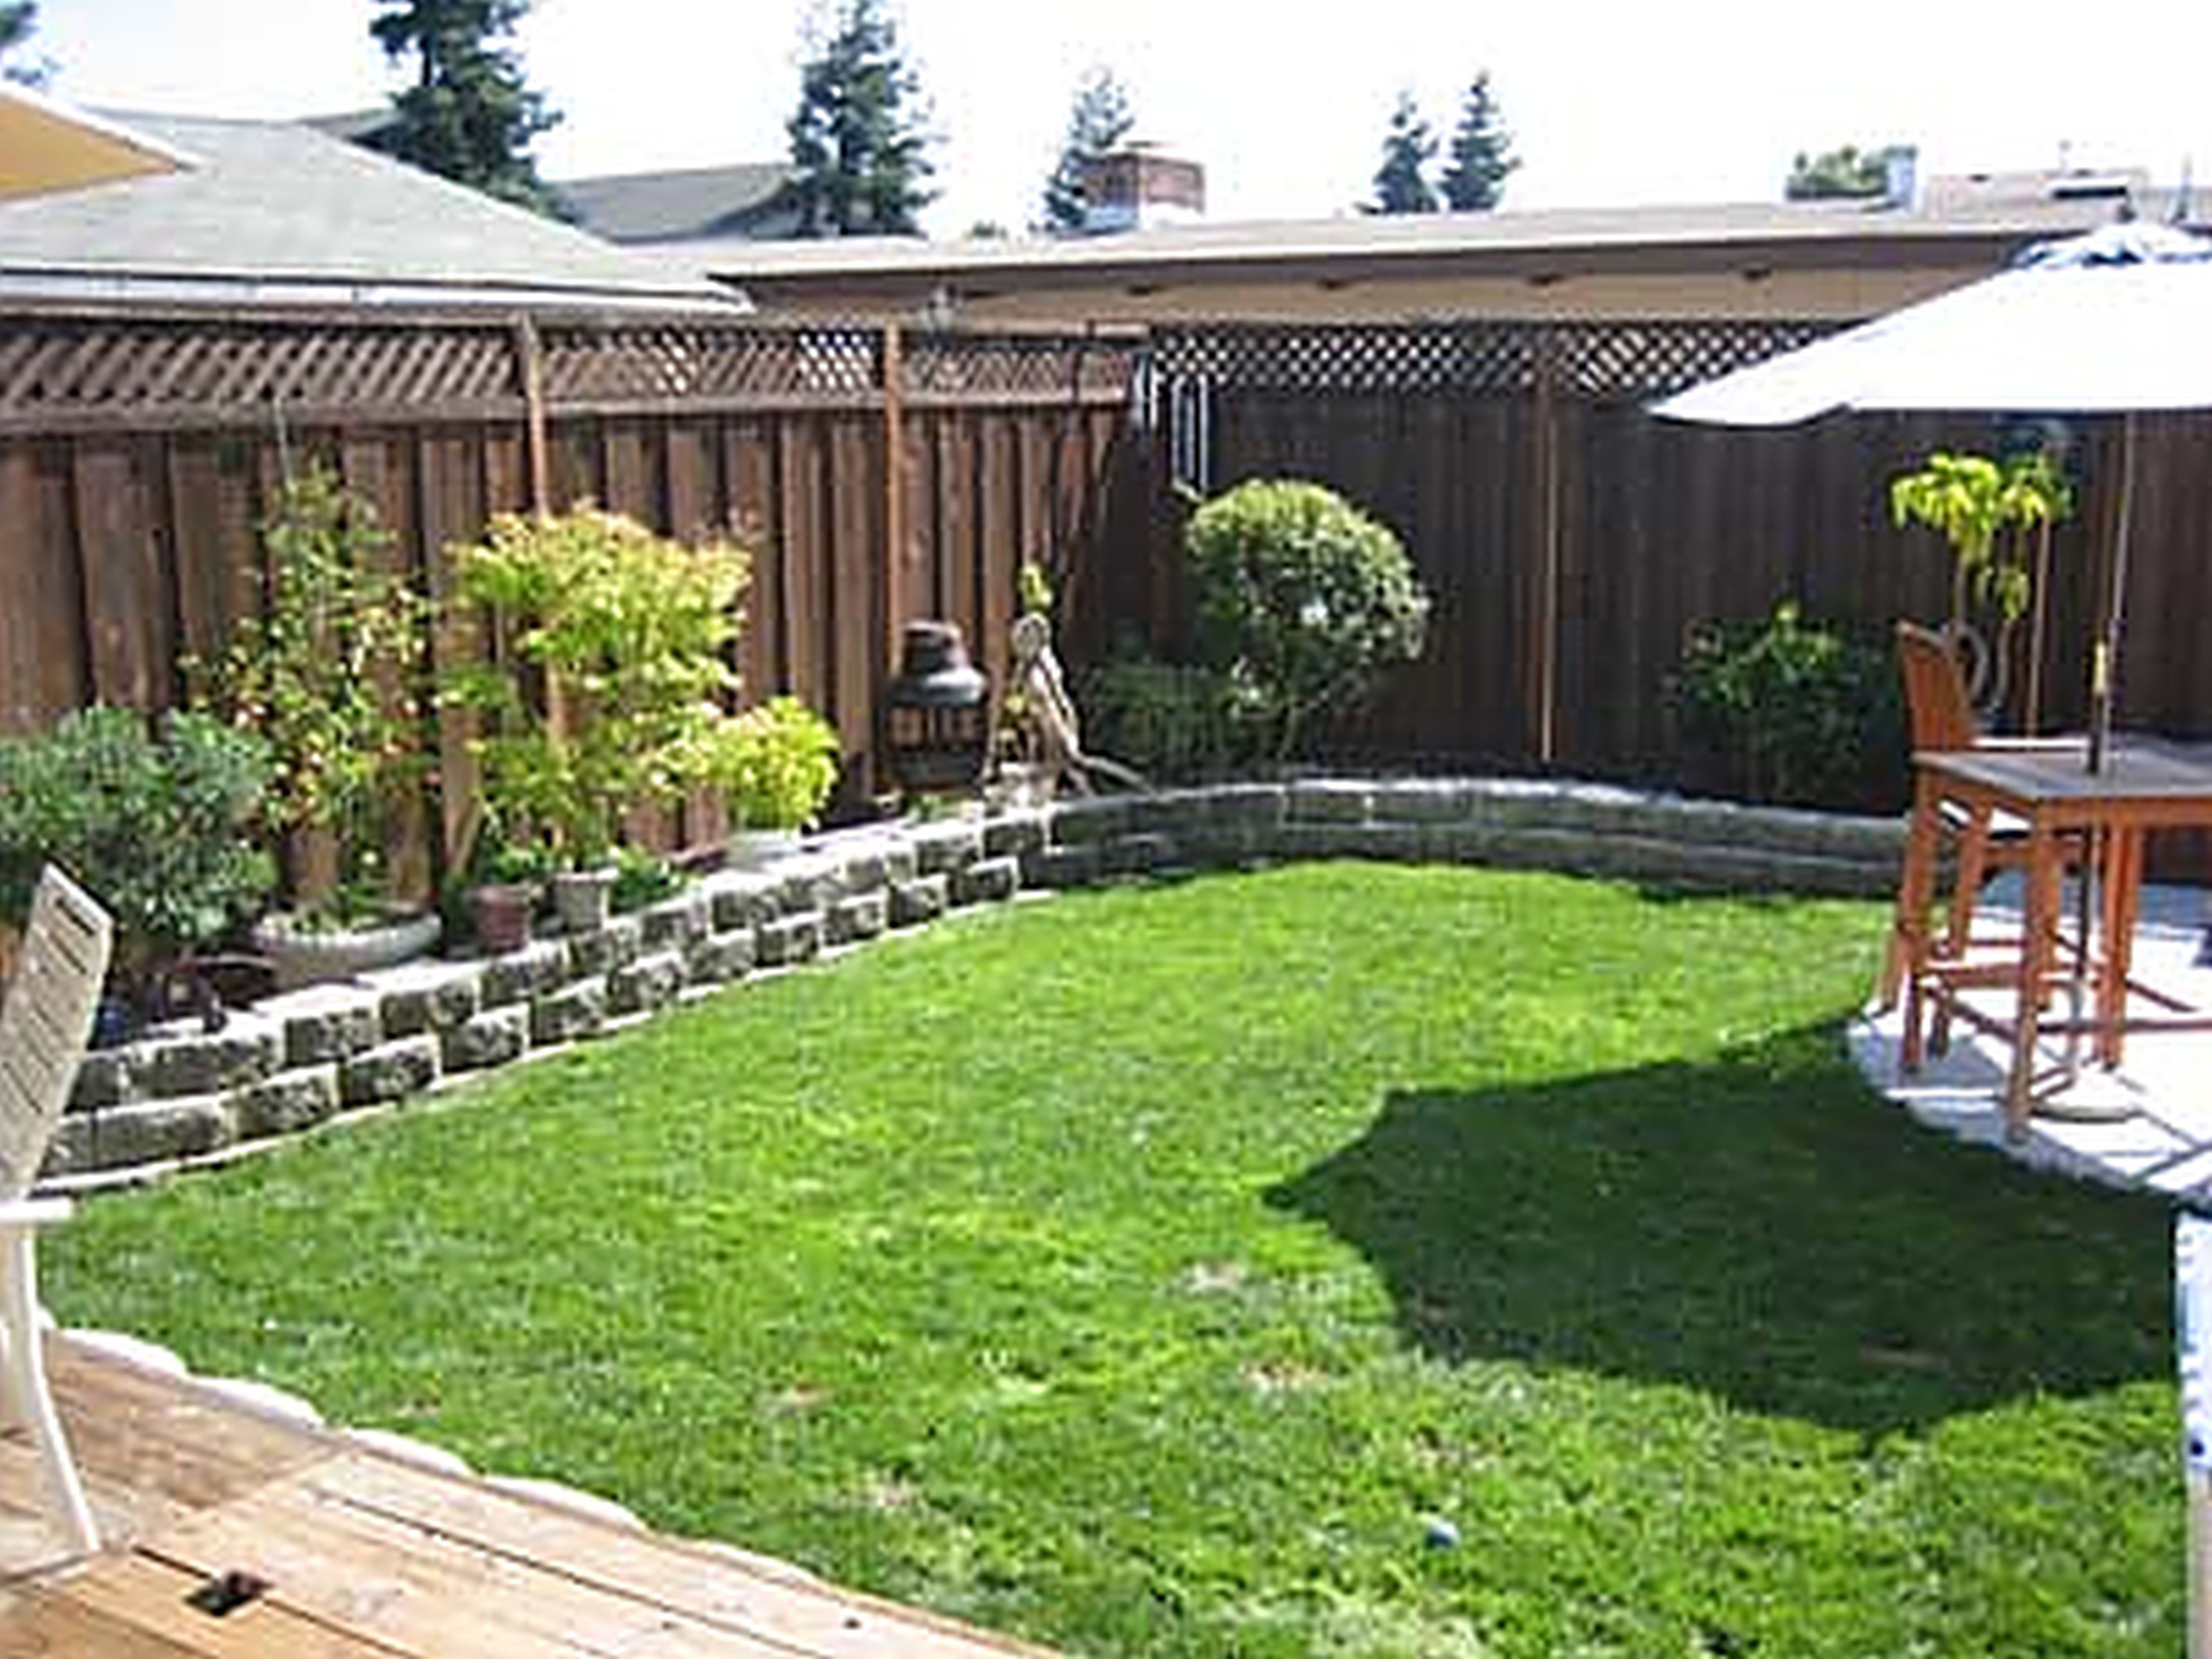 Backyard landscaping design ideas large and beautiful for Home landscaping ideas